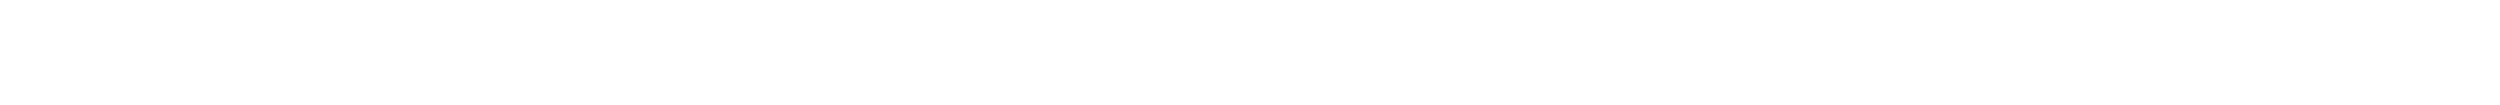 AMerchmake Icons solo .png